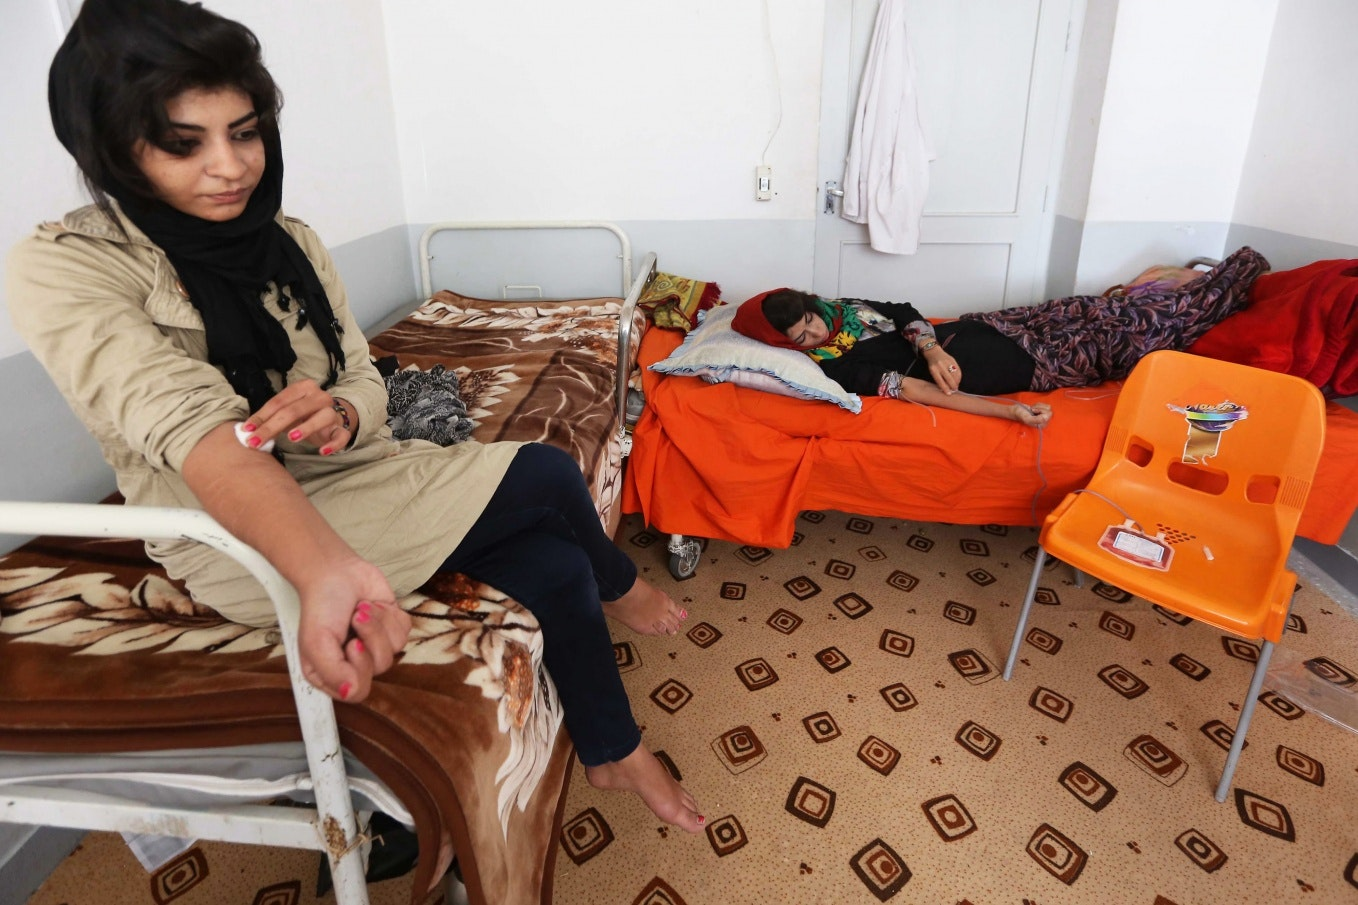 women donate blood in a clinic